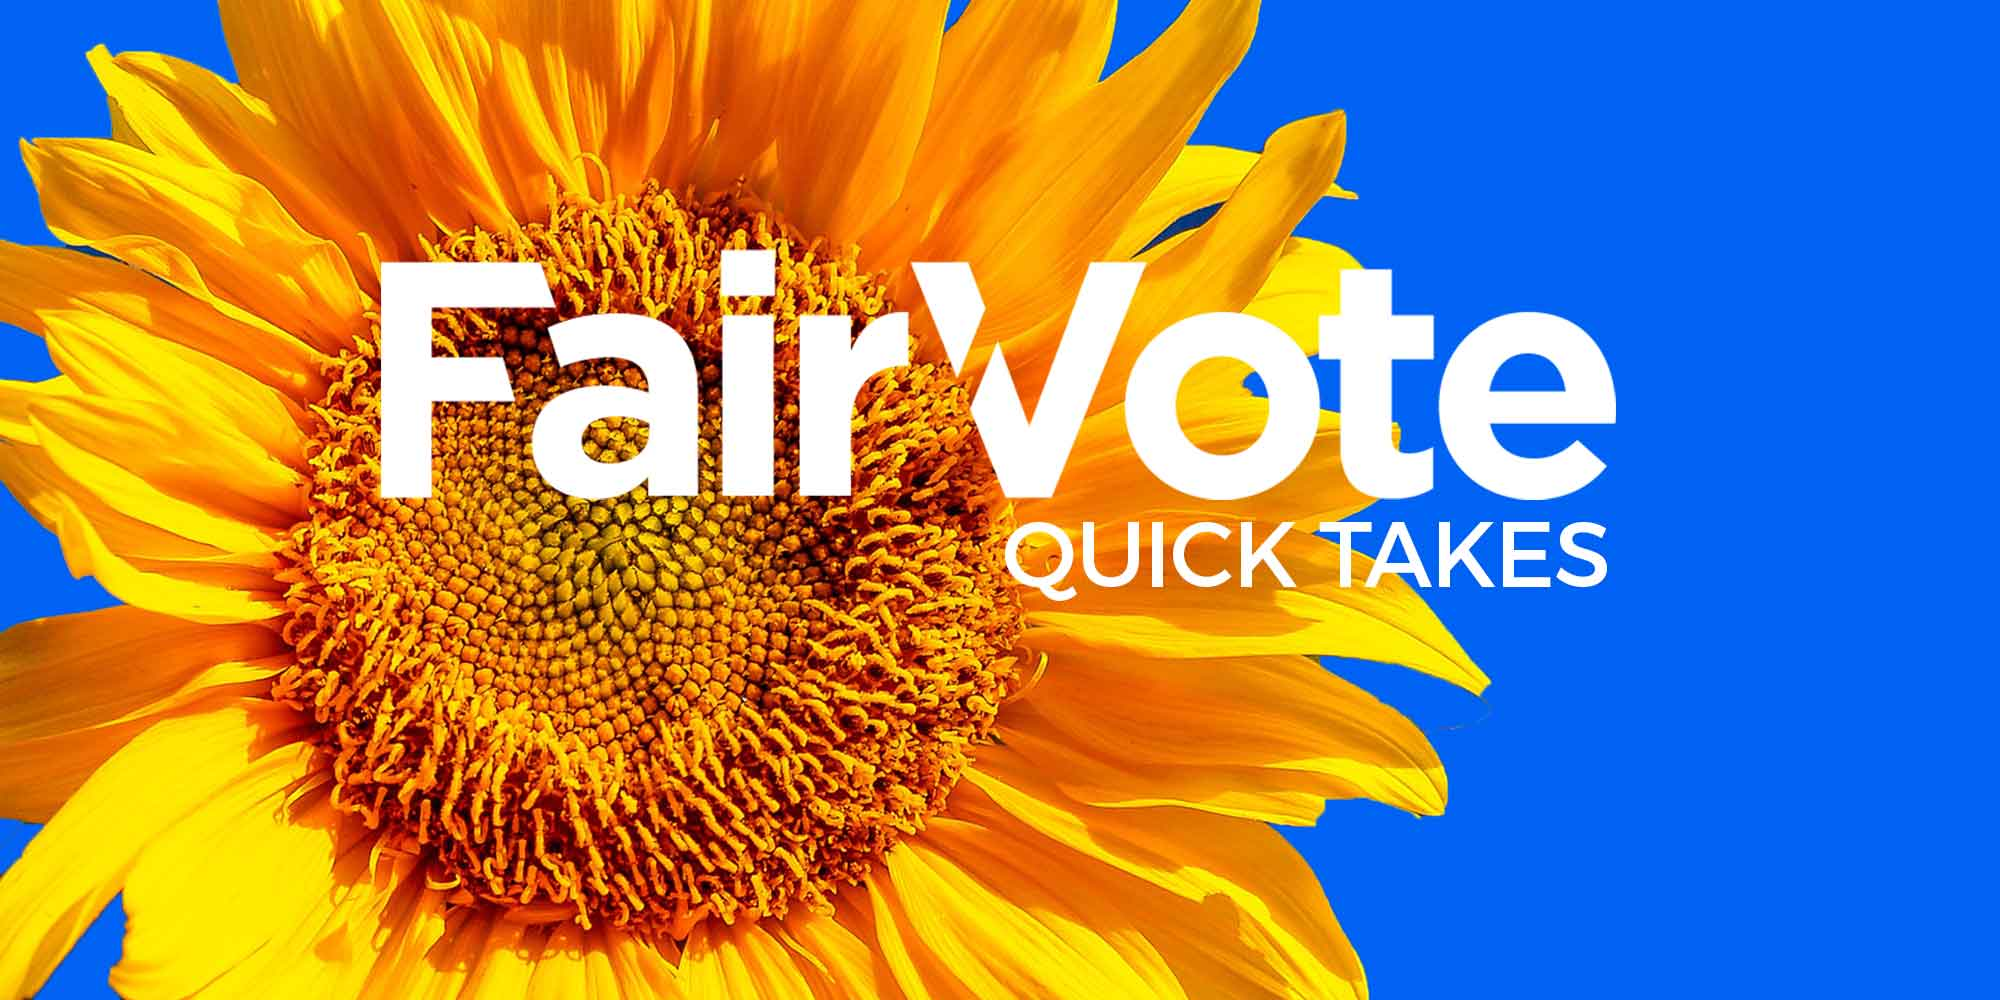 Ranked Choice Voting for presidential primaries takes root in the 'Sunflower State'